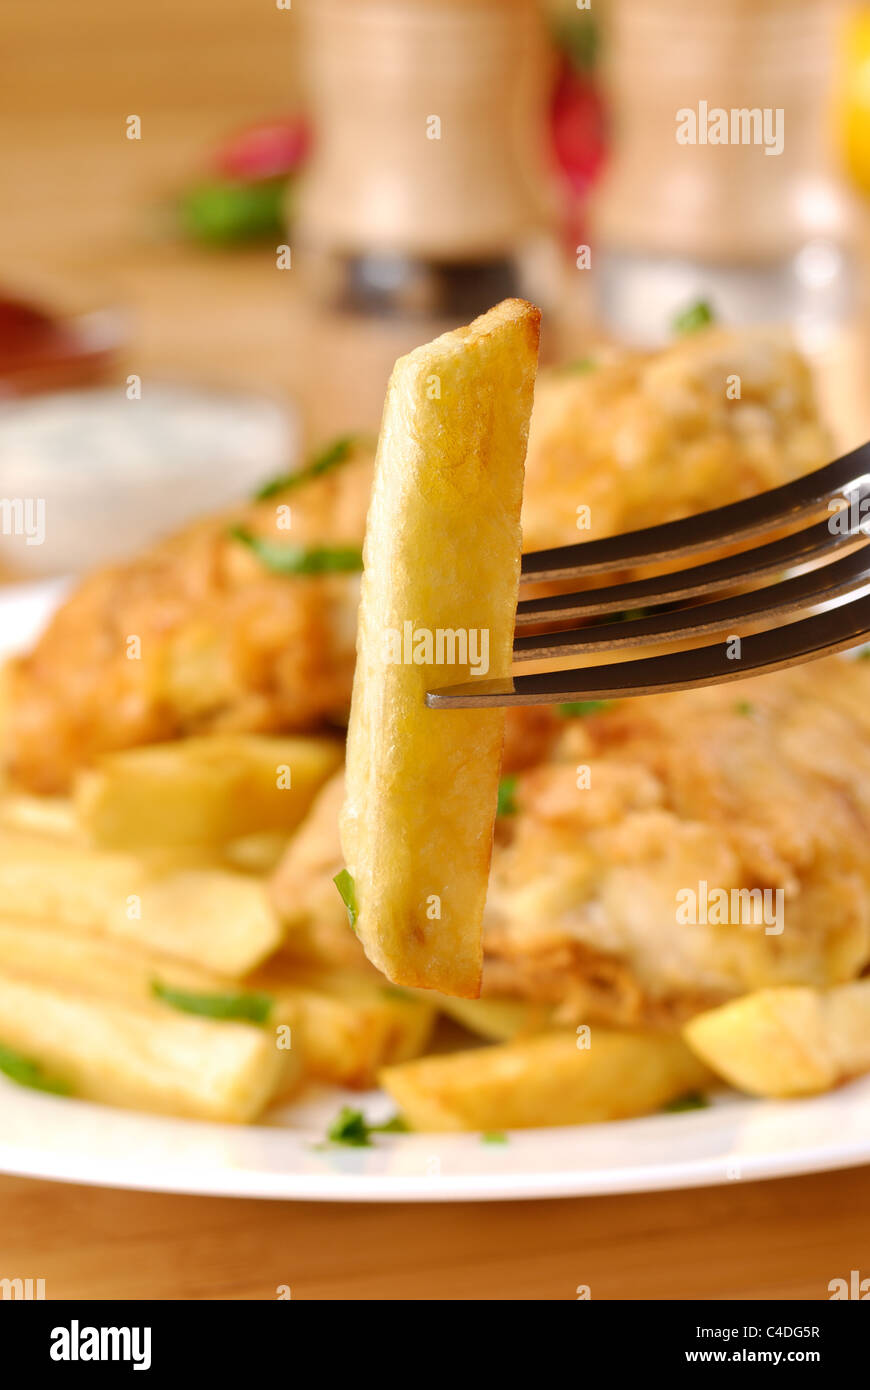 French fries, fish, mayo and spices - Stock Image